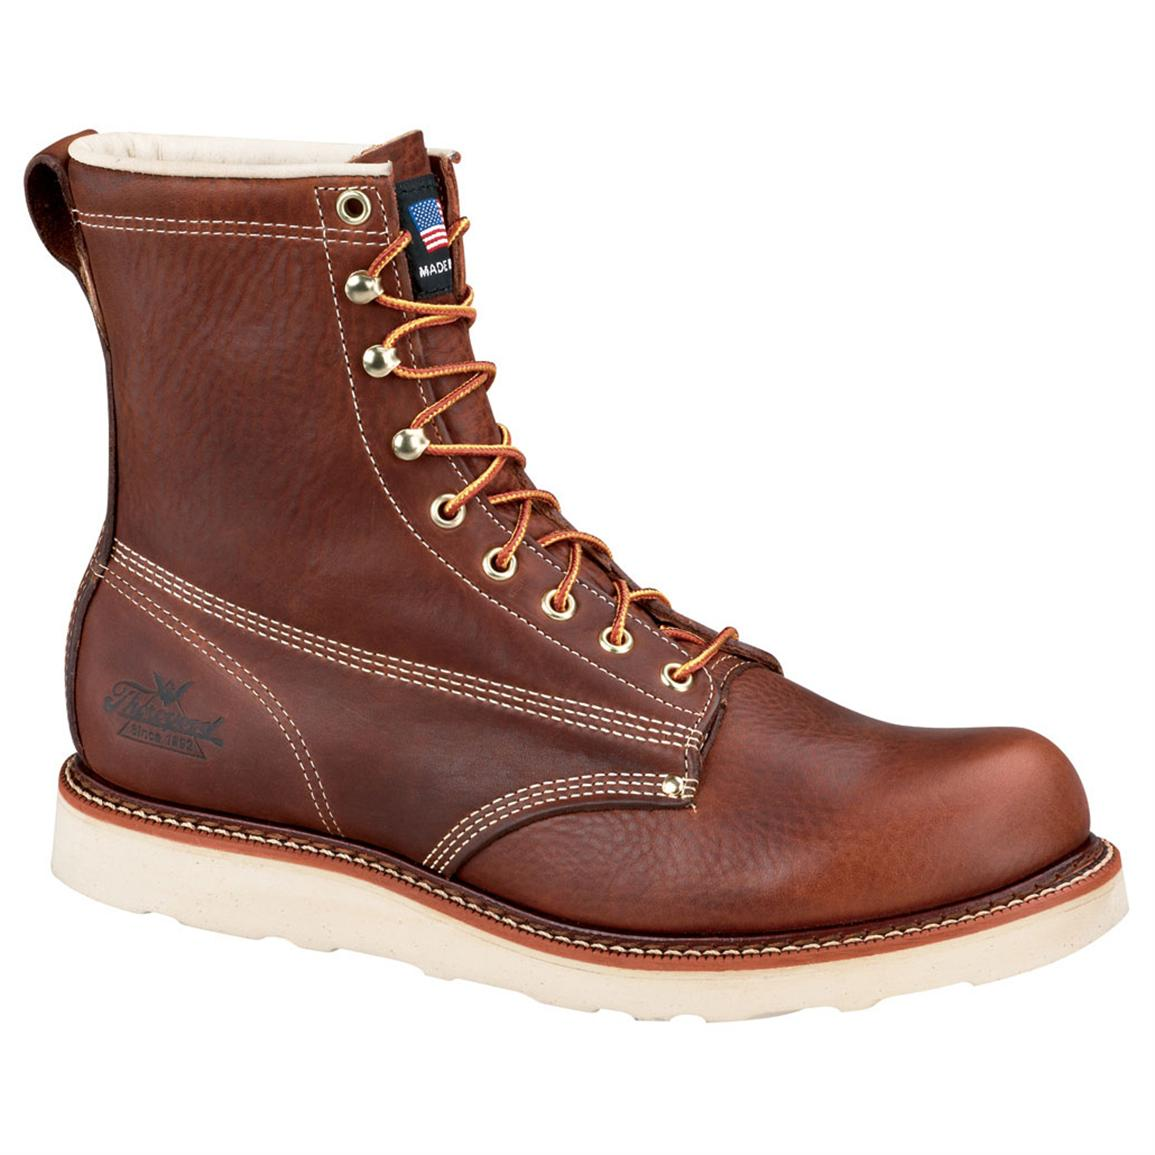 Mens Insulated Boots WoyUWmrL